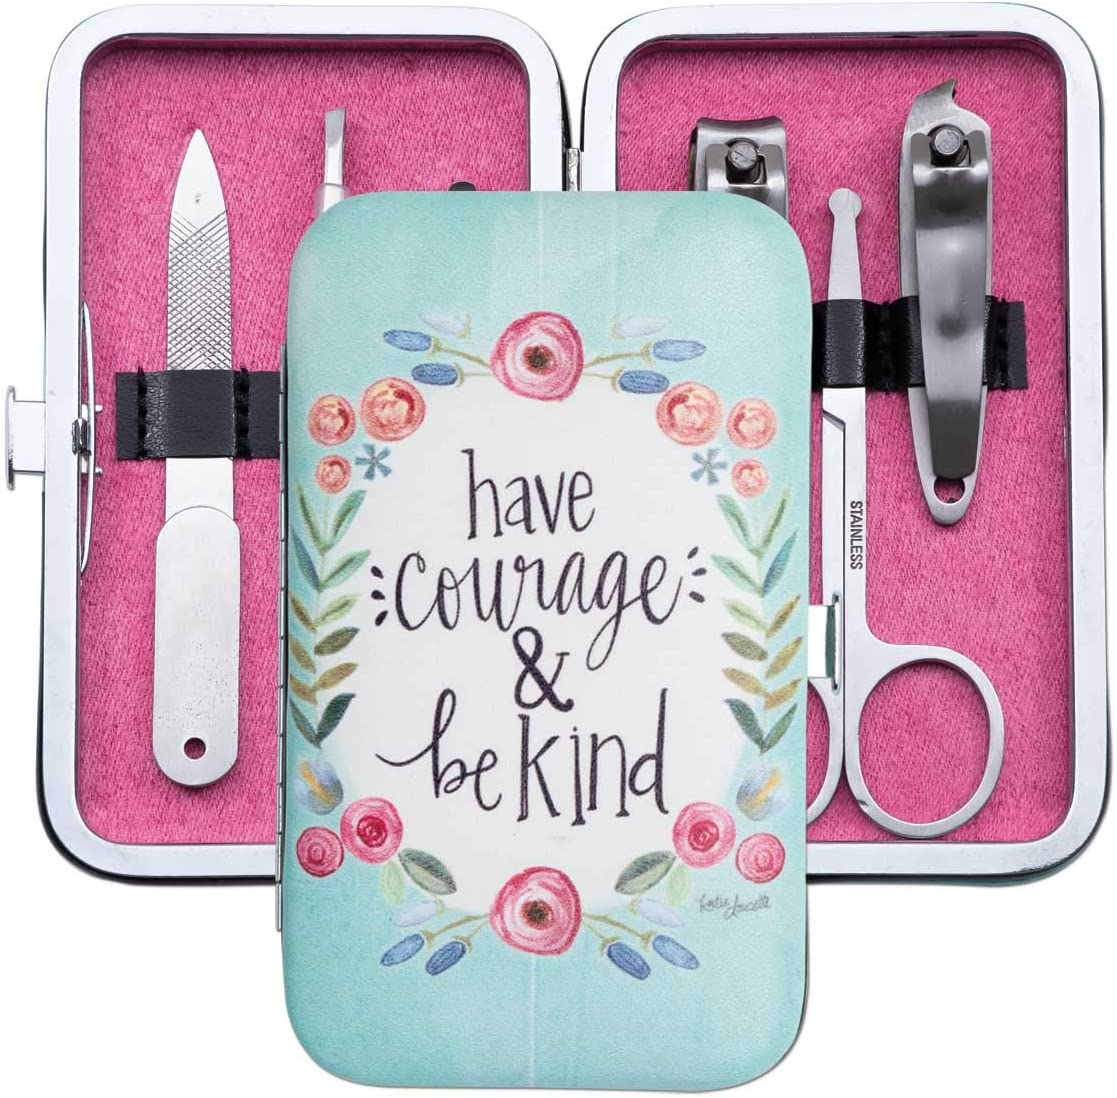 Brownlow Gifts Simple Inspirations 6-Piece Stainless Steel Manicure Set with Case, Have Courage & Be Kind